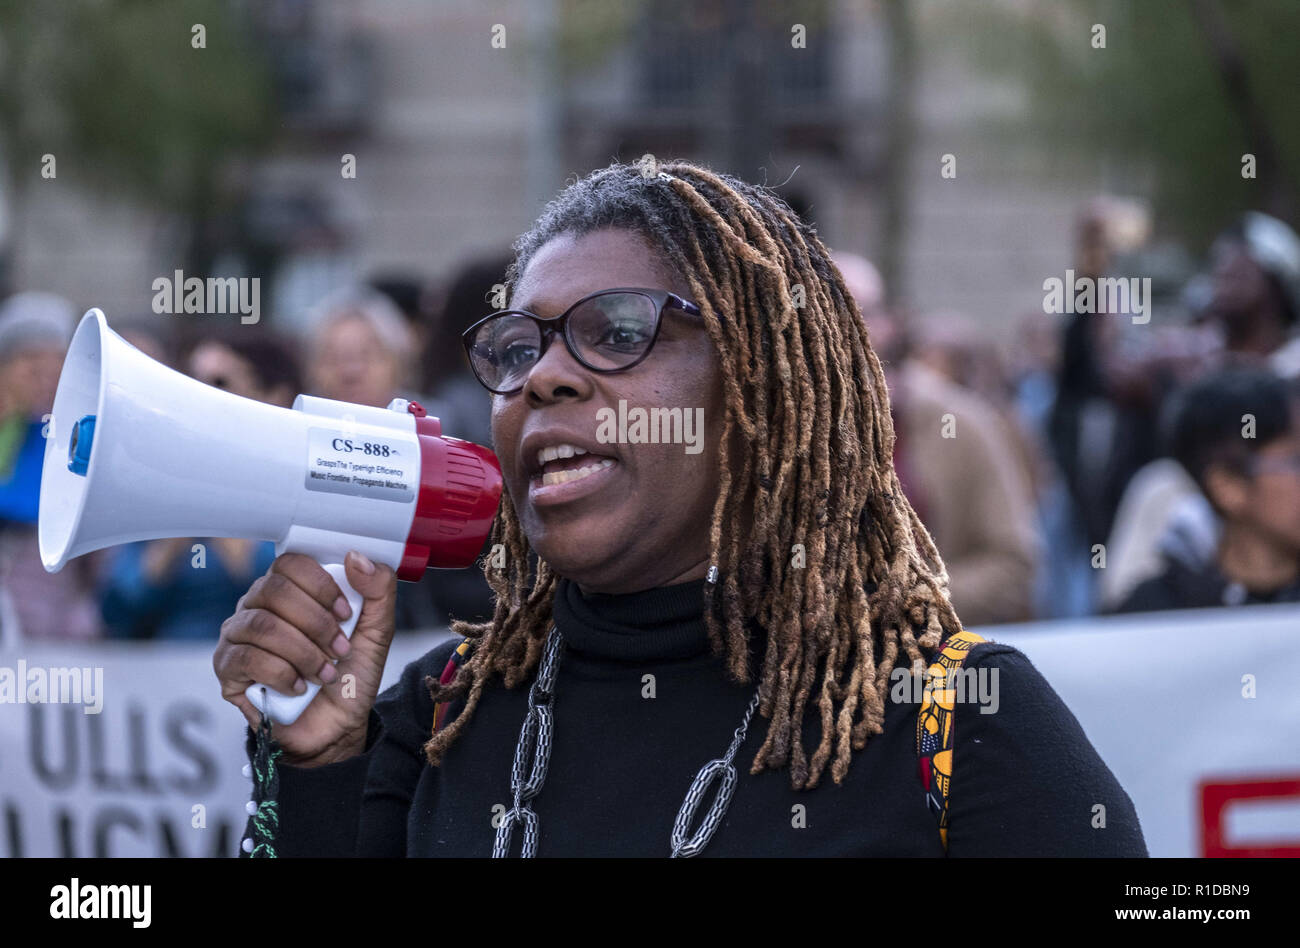 Barcelona, Catalonia, Spain. 11th Nov, 2018. A black woman seen speaking on a megaphone during the demonstration.A new manifestation against institutional racism has crossed the streets of the center of Barcelona. Accompanied by social organizations and the Trade Union of street vendors, more than 500 people have claimed to end racism in Barcelona and have denounced police identifications according to the color of their skin. Credit: Paco Freire/SOPA Images/ZUMA Wire/Alamy Live News - Stock Image